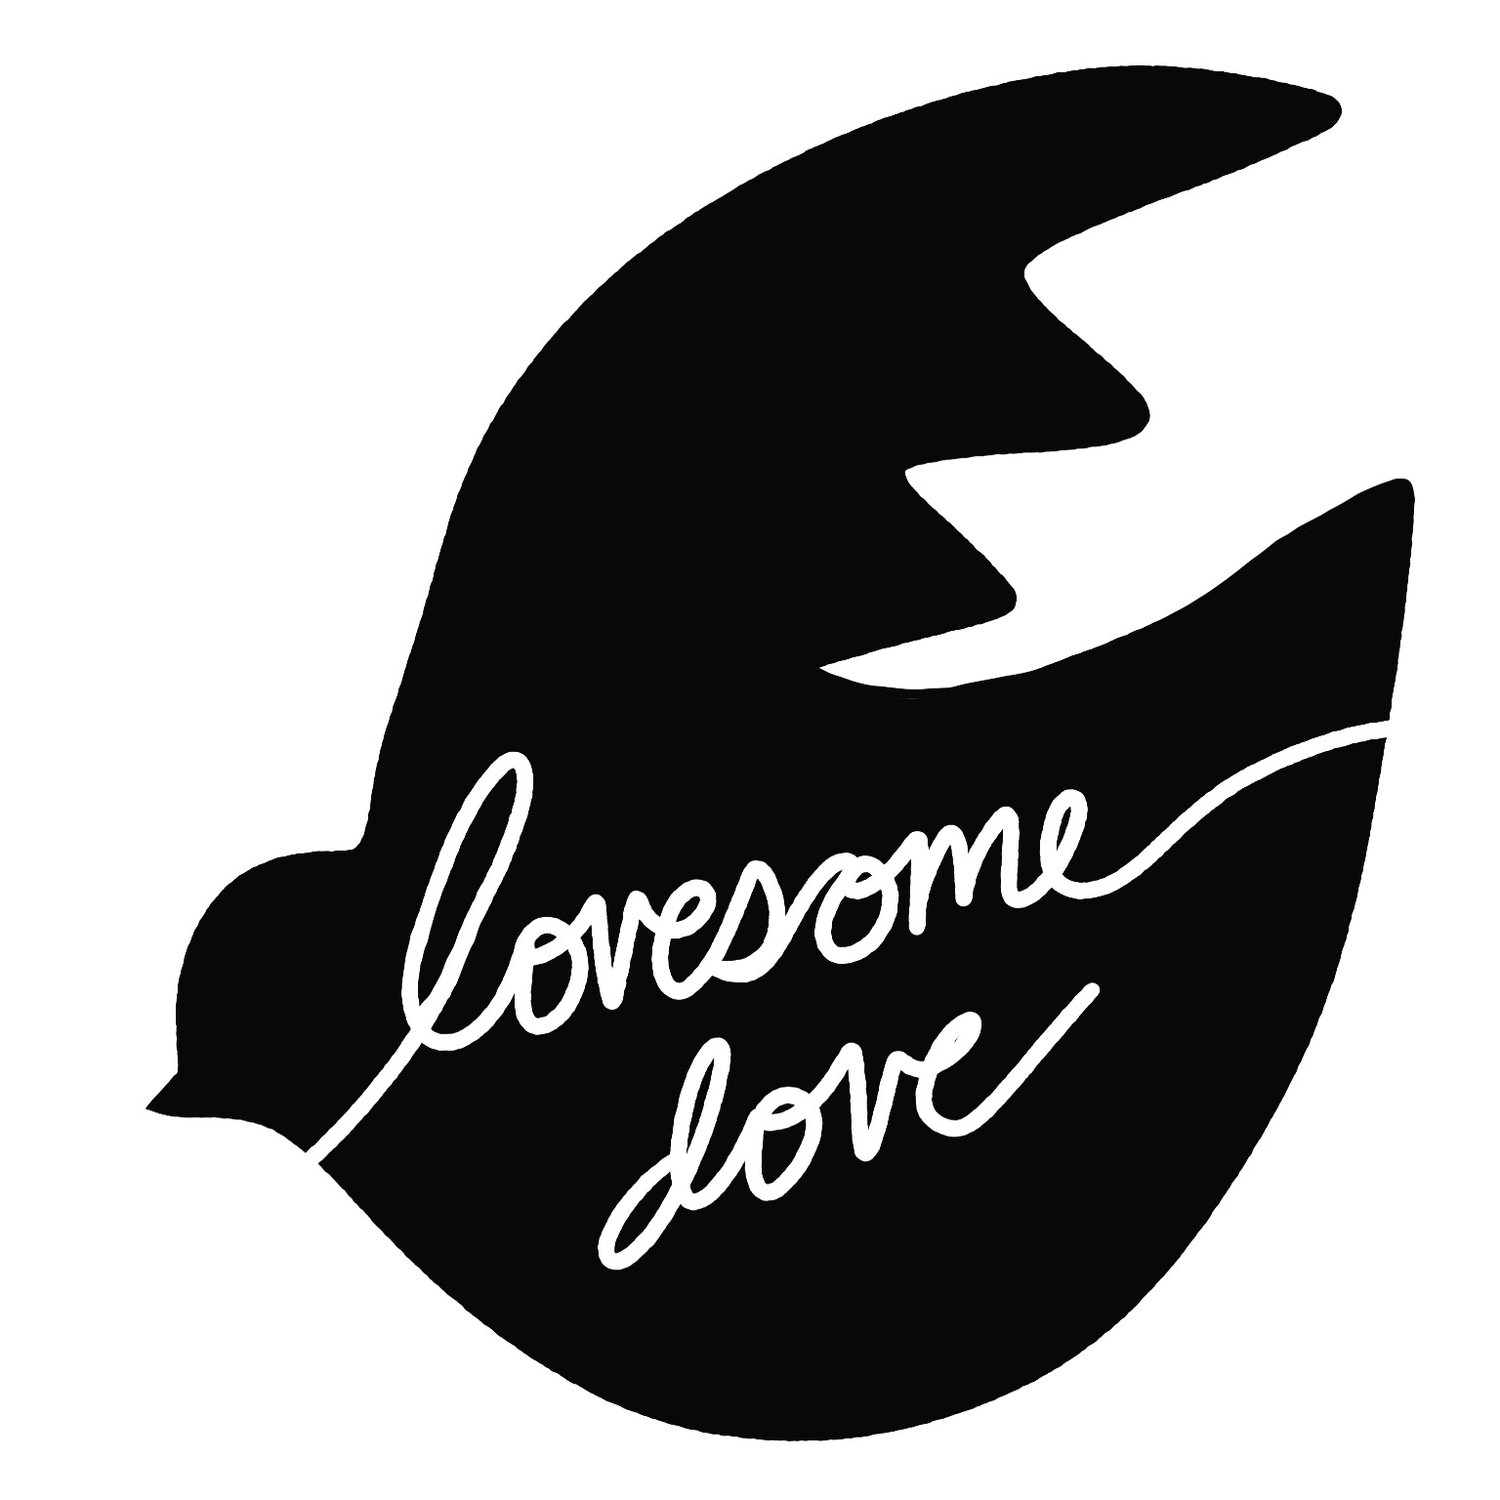 Lovesome Dove//angela larsen